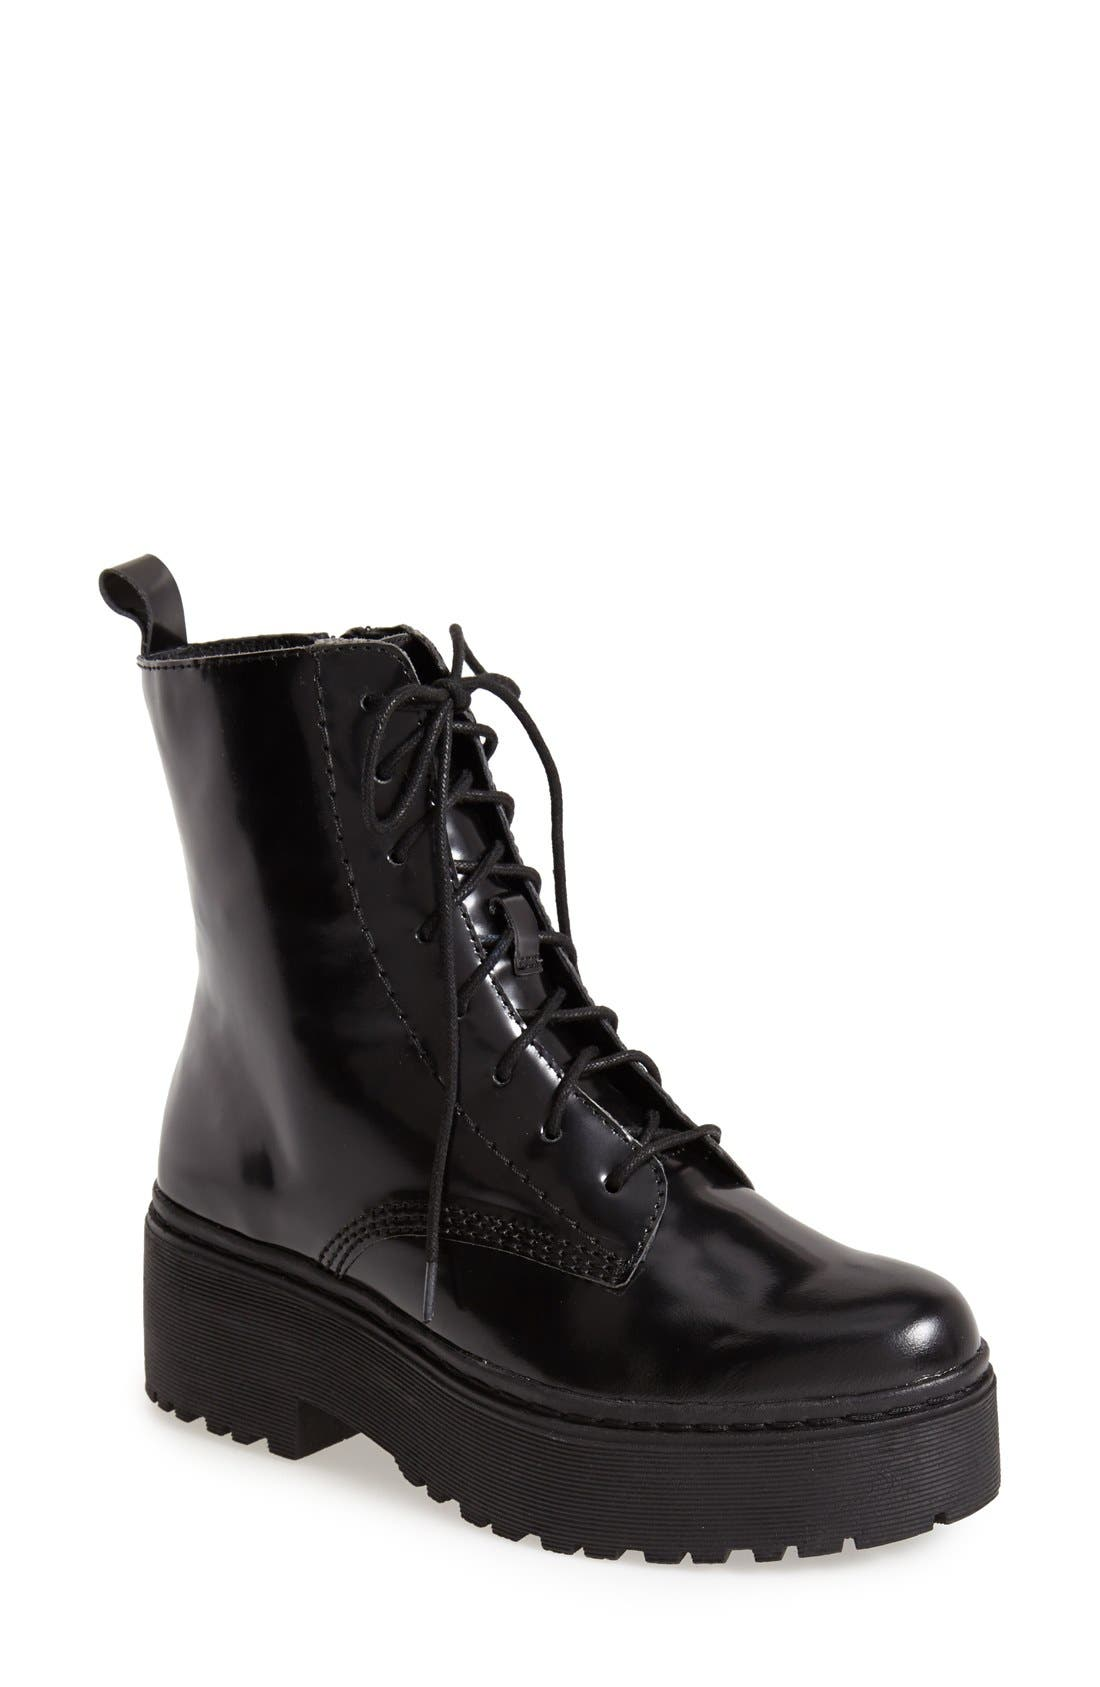 'Finnick' Boot,                         Main,                         color, Black